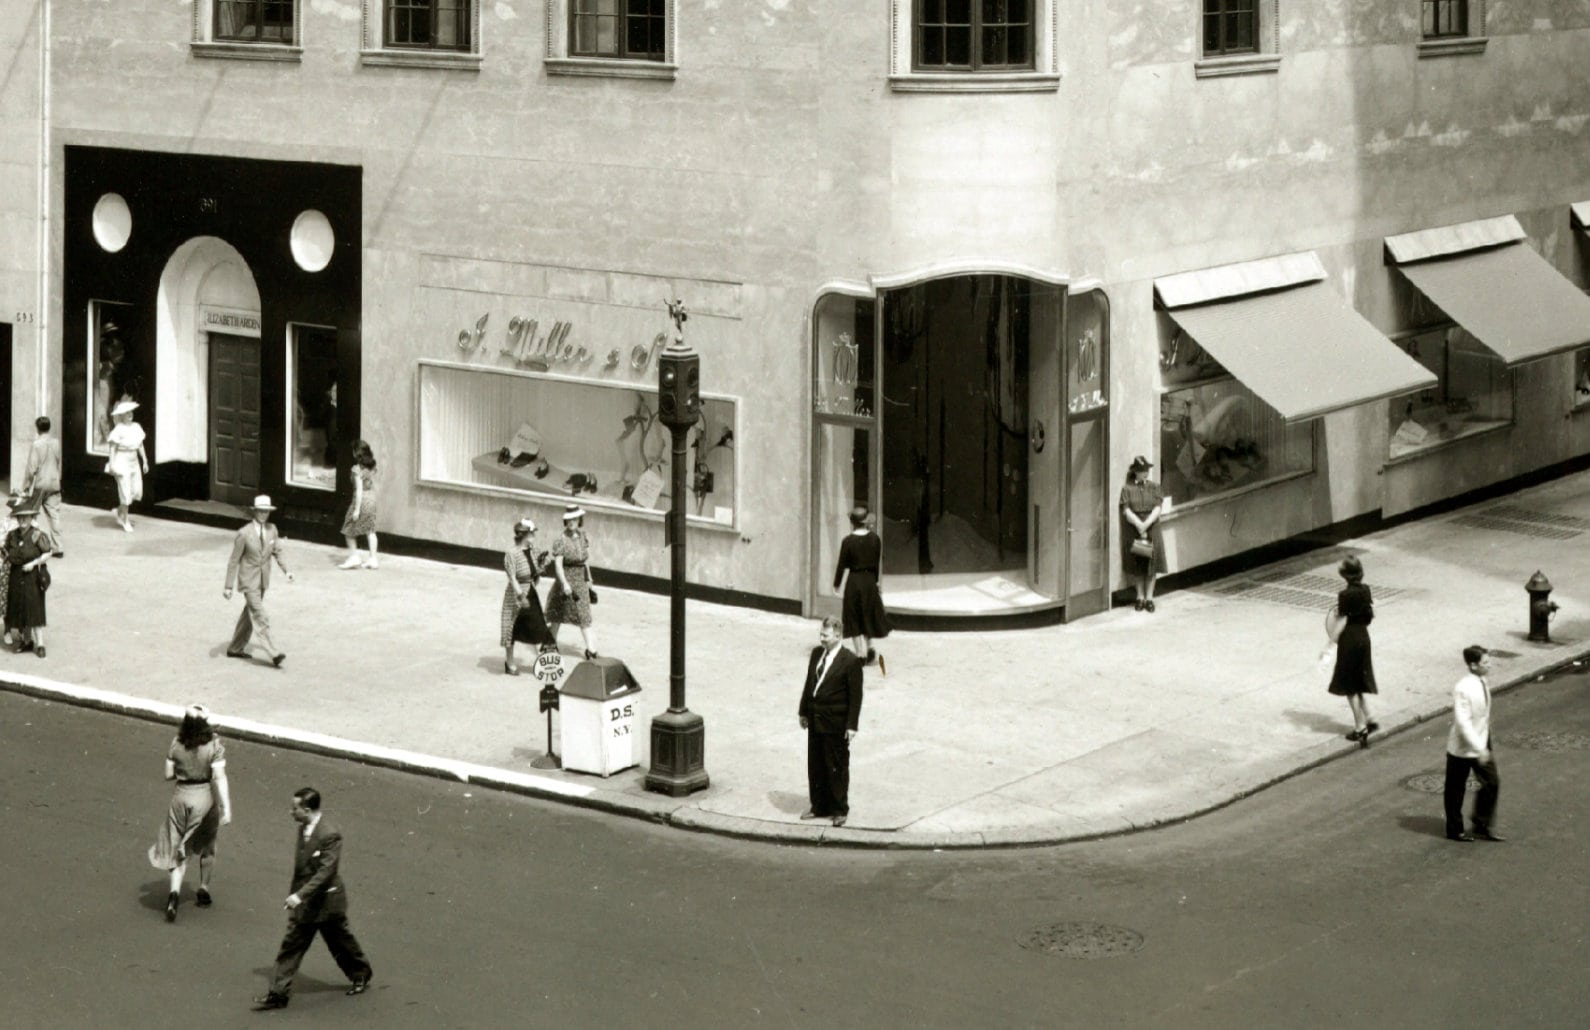 Fifth Avenue NYC shoe store - I. Miller & Sons Bldg - 1930s/1940s